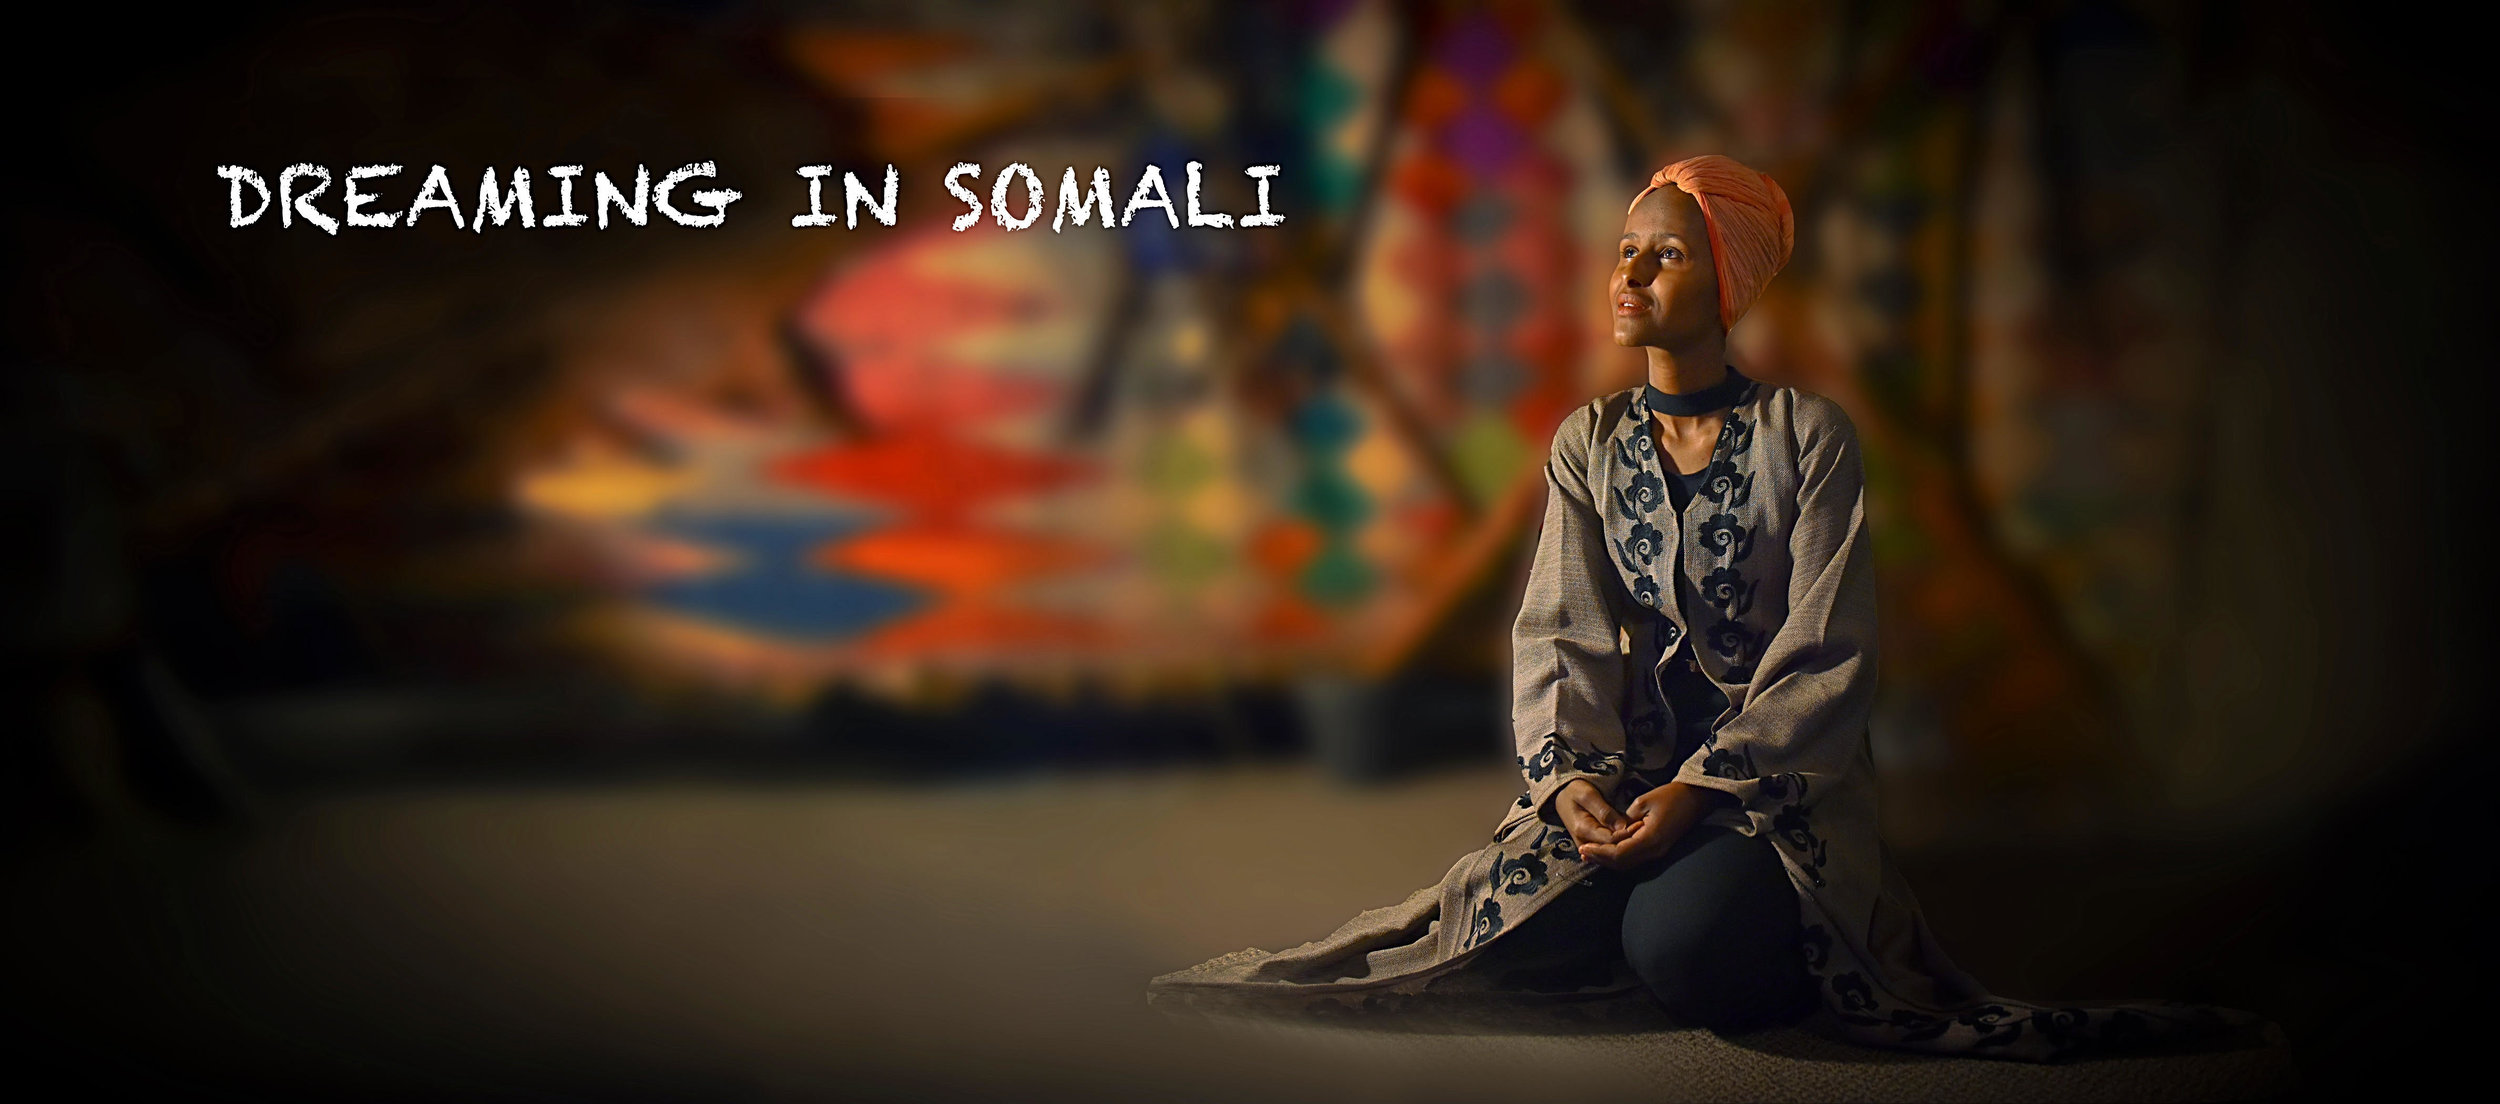 Dreaming in Somali - 'Dreaming in Somali' is a timely exploration of the Somali-American experience through the eyes of four residents of the Twin Cities – a police officer, a union leader, a nonprofit director, and an imam and teacher.